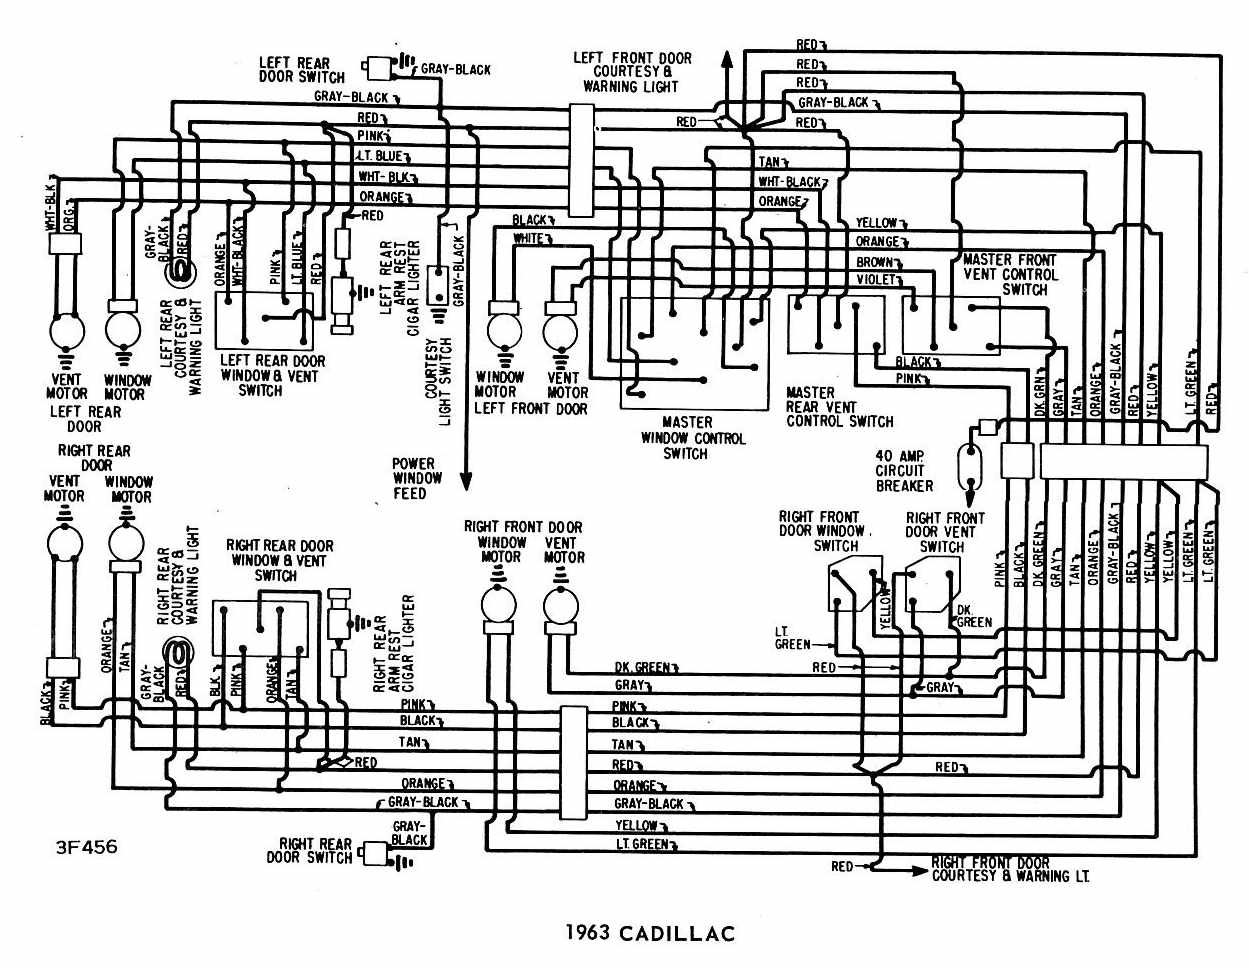 Cadillac+1963+Windows+Wiring+Diagram cadillac 1963 windows wiring diagram all about wiring diagrams 1963 ford wiring diagram at crackthecode.co